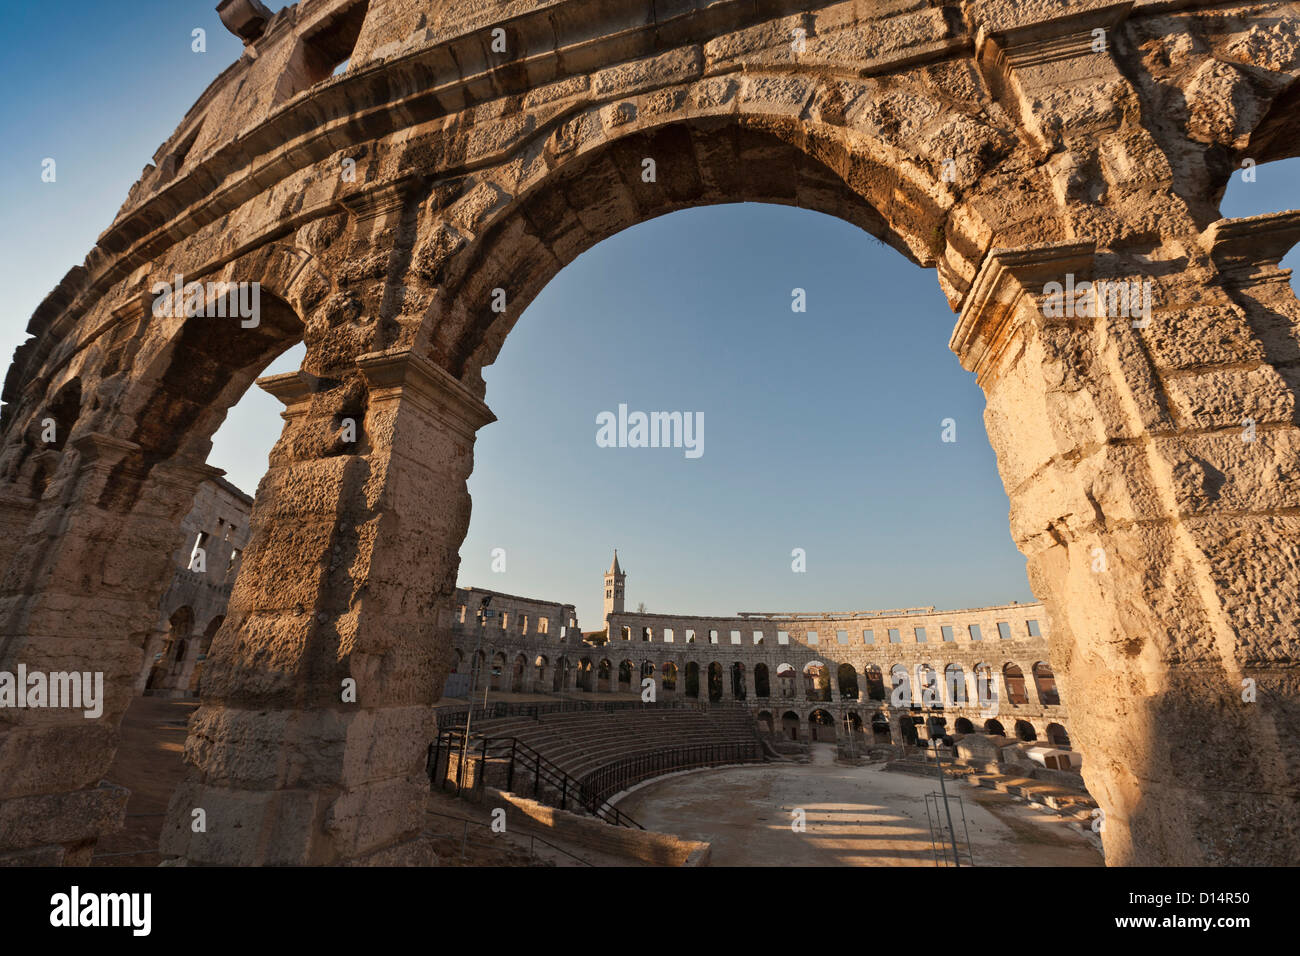 Ancient ruins of arena - Stock Image